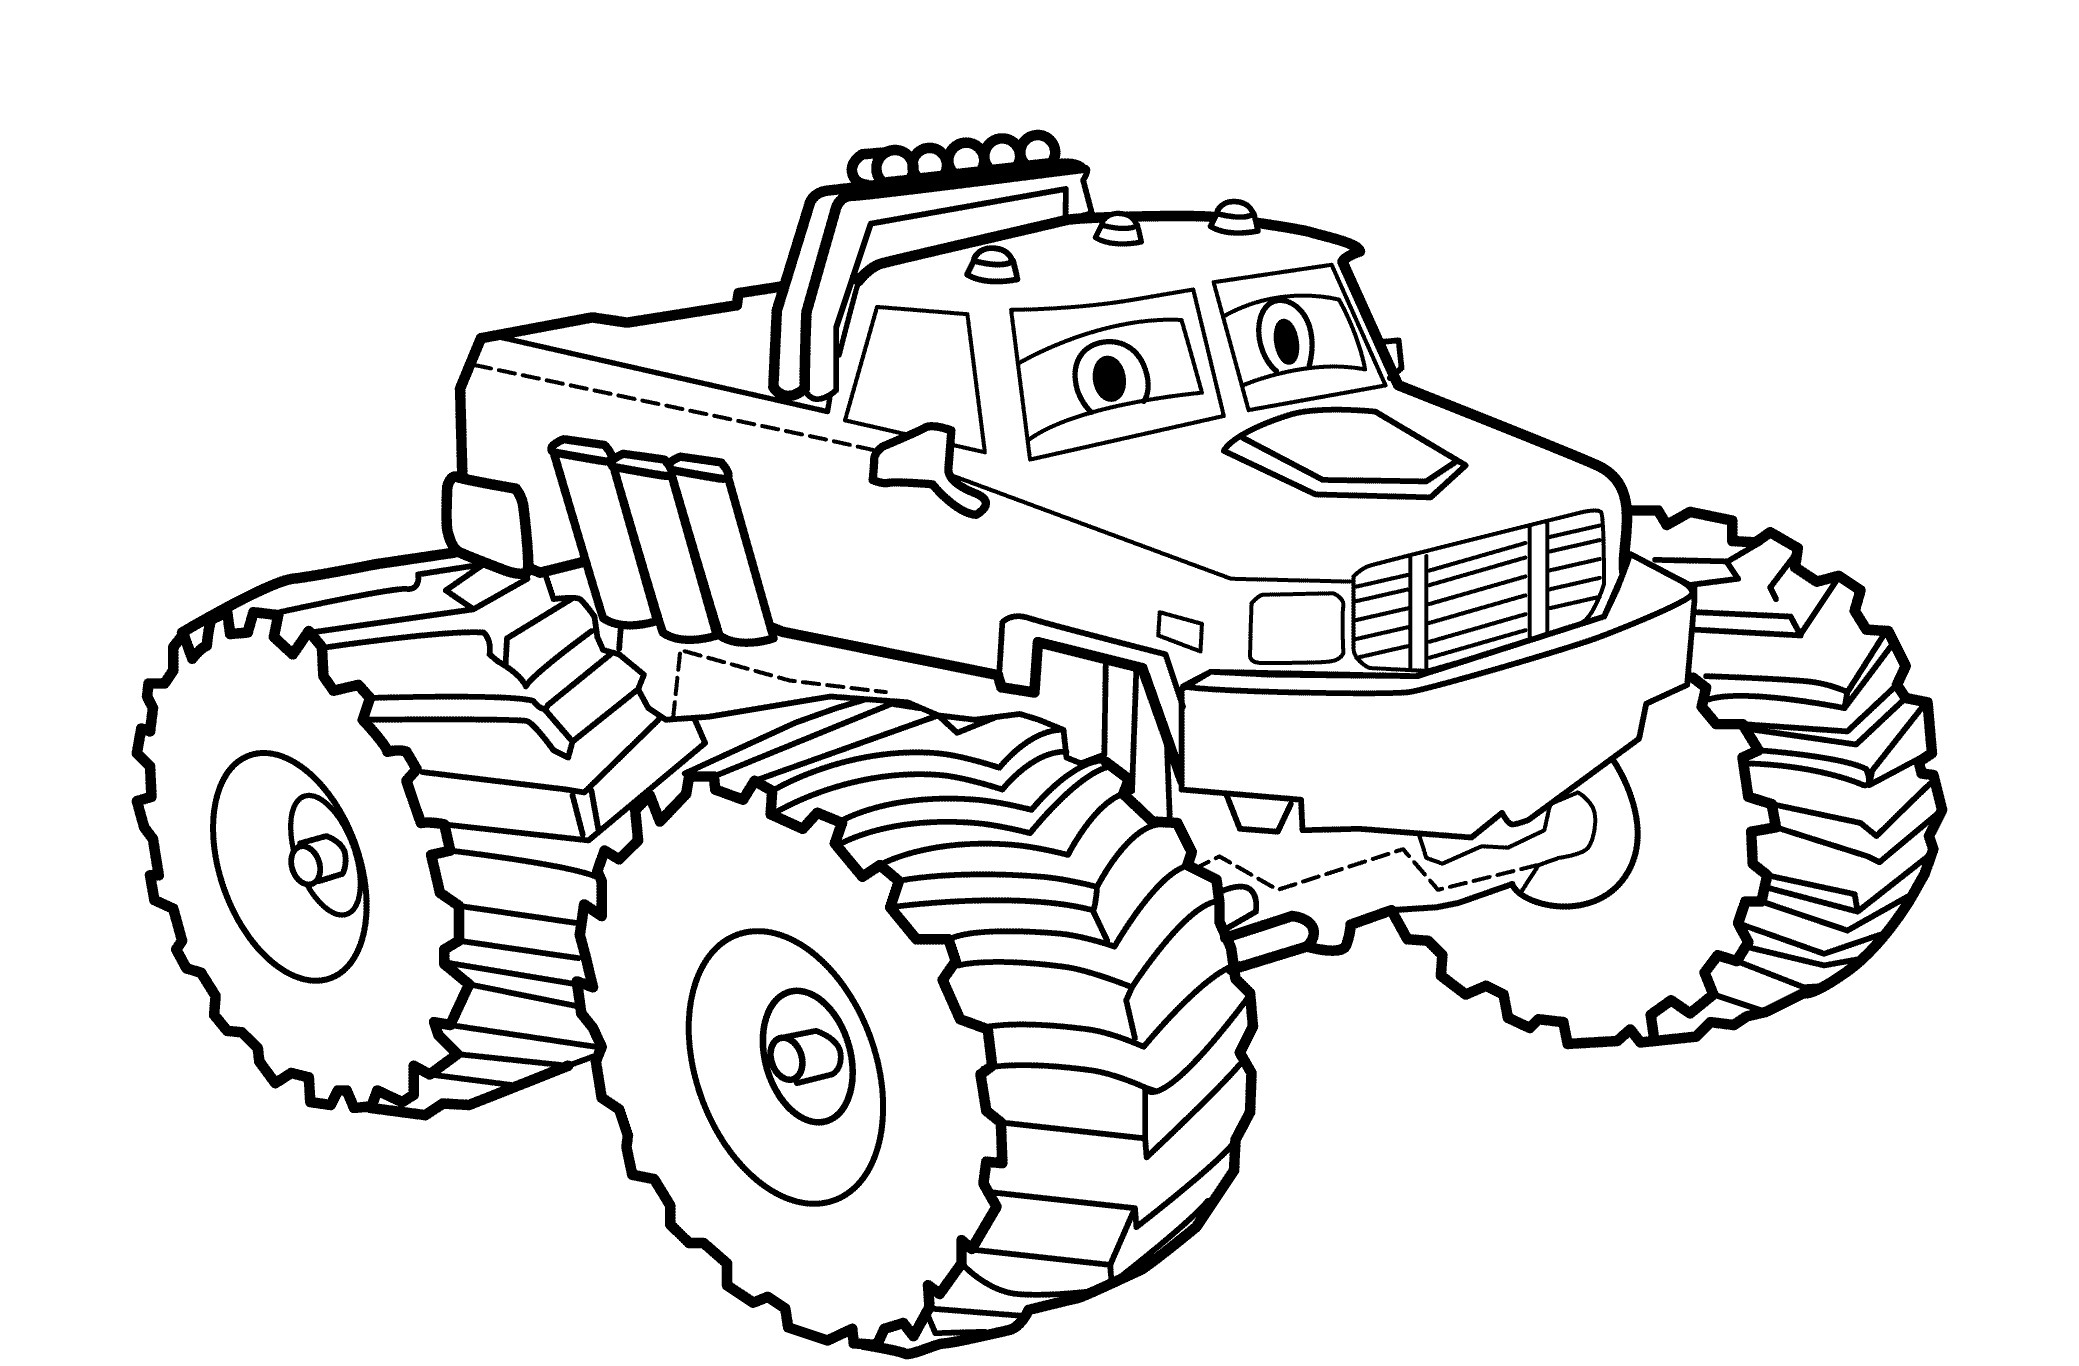 2079x1366 Small City Car Coloring Page For Kids Transportation Pages